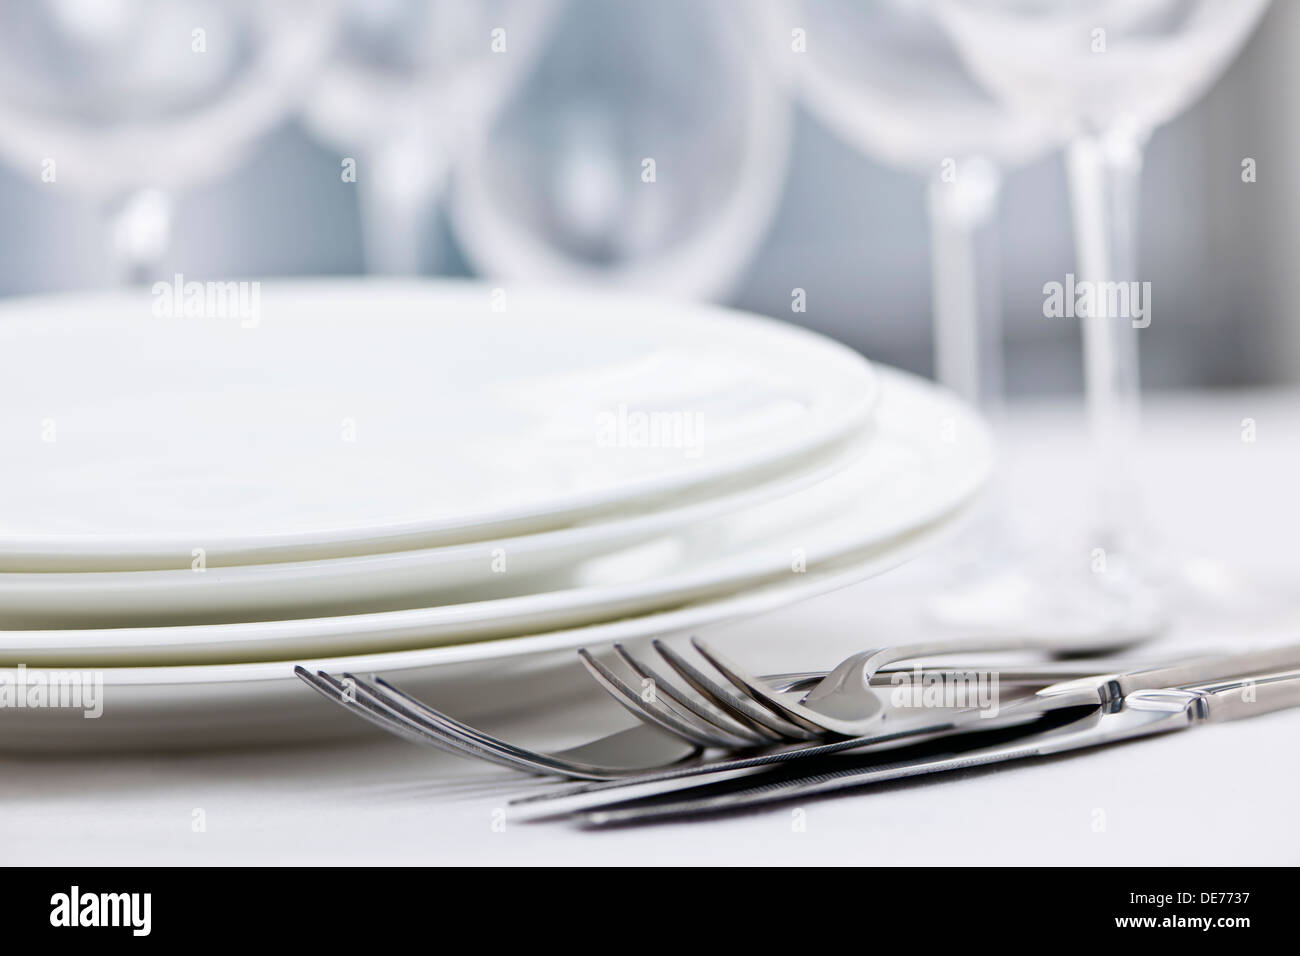 Elegant restaurant table setting for fine dining with plates cutlery and stemware & Elegant restaurant table setting for fine dining with plates cutlery ...